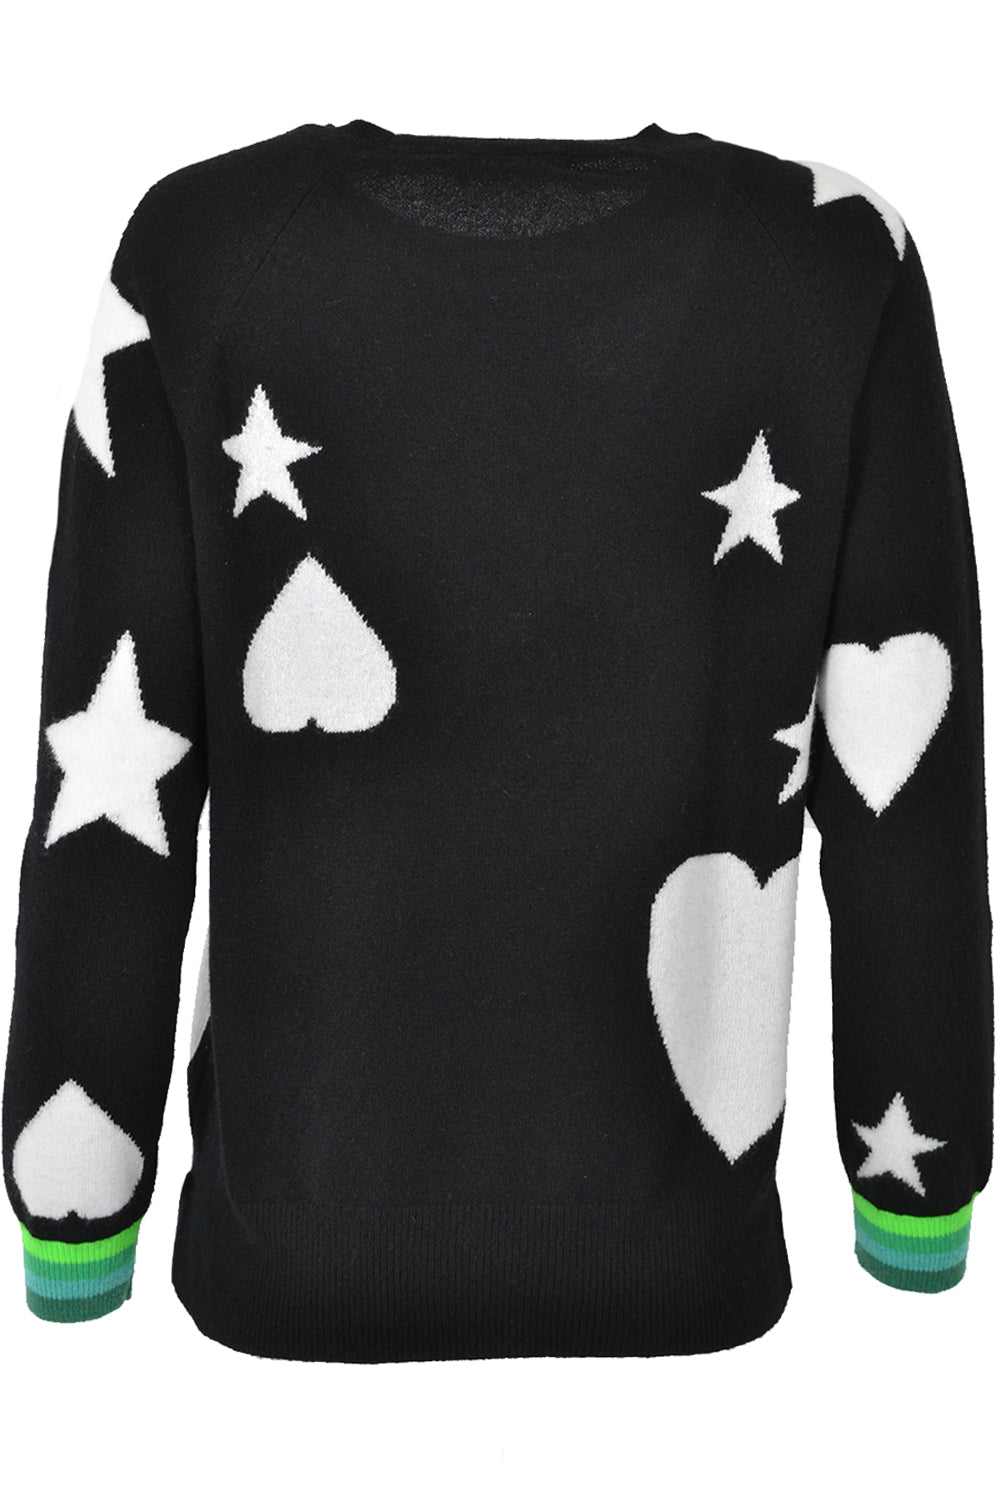 Brodie Cashmere Starstruck Hearts and Stars Jumper Black